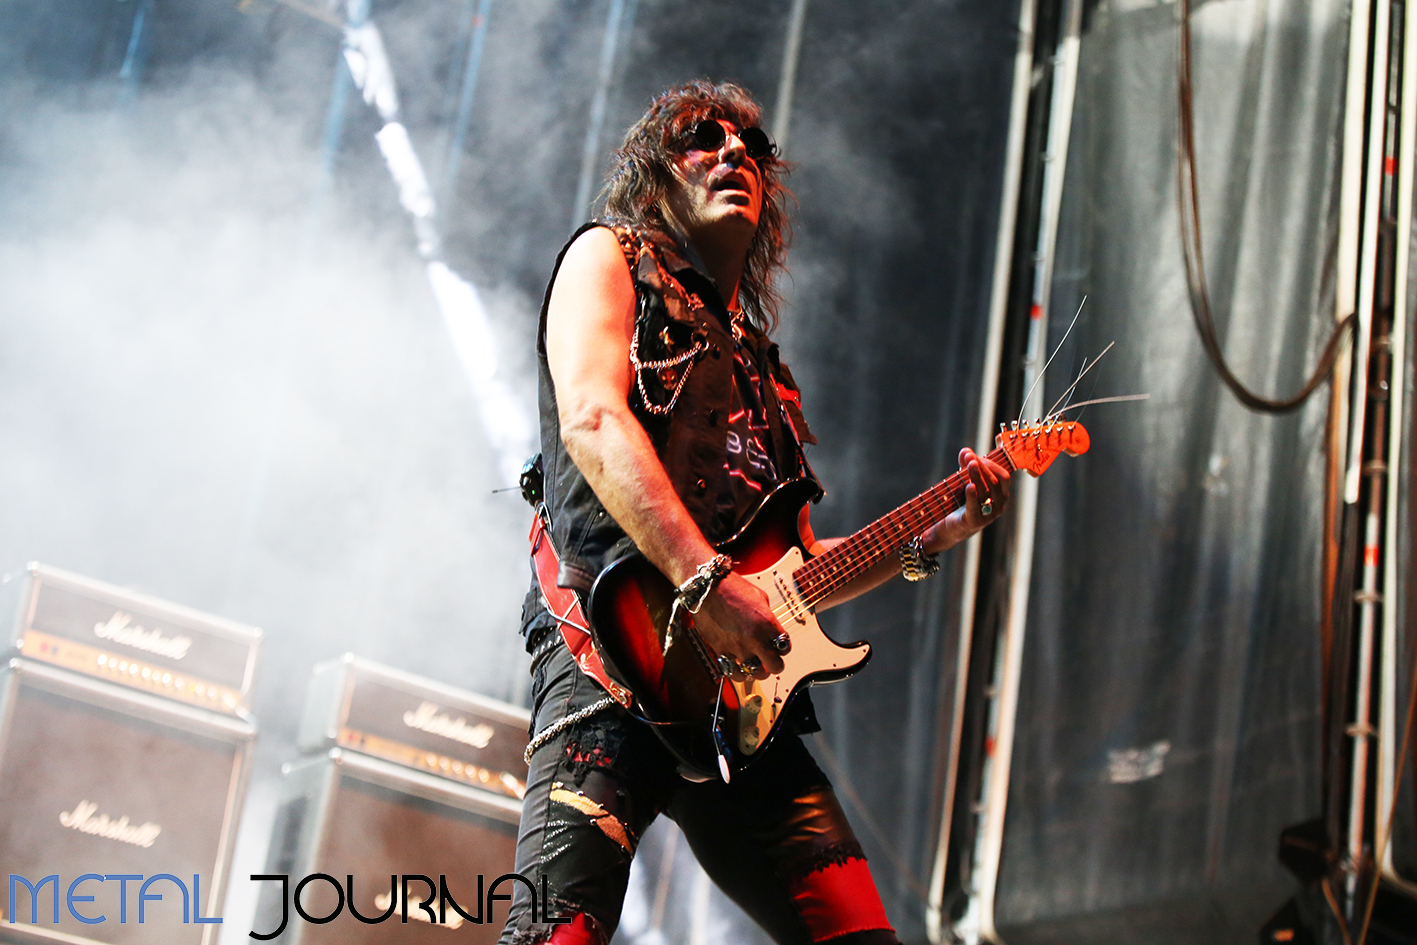 rata blanca - leyendas del rock 2019 metal journal pic 8